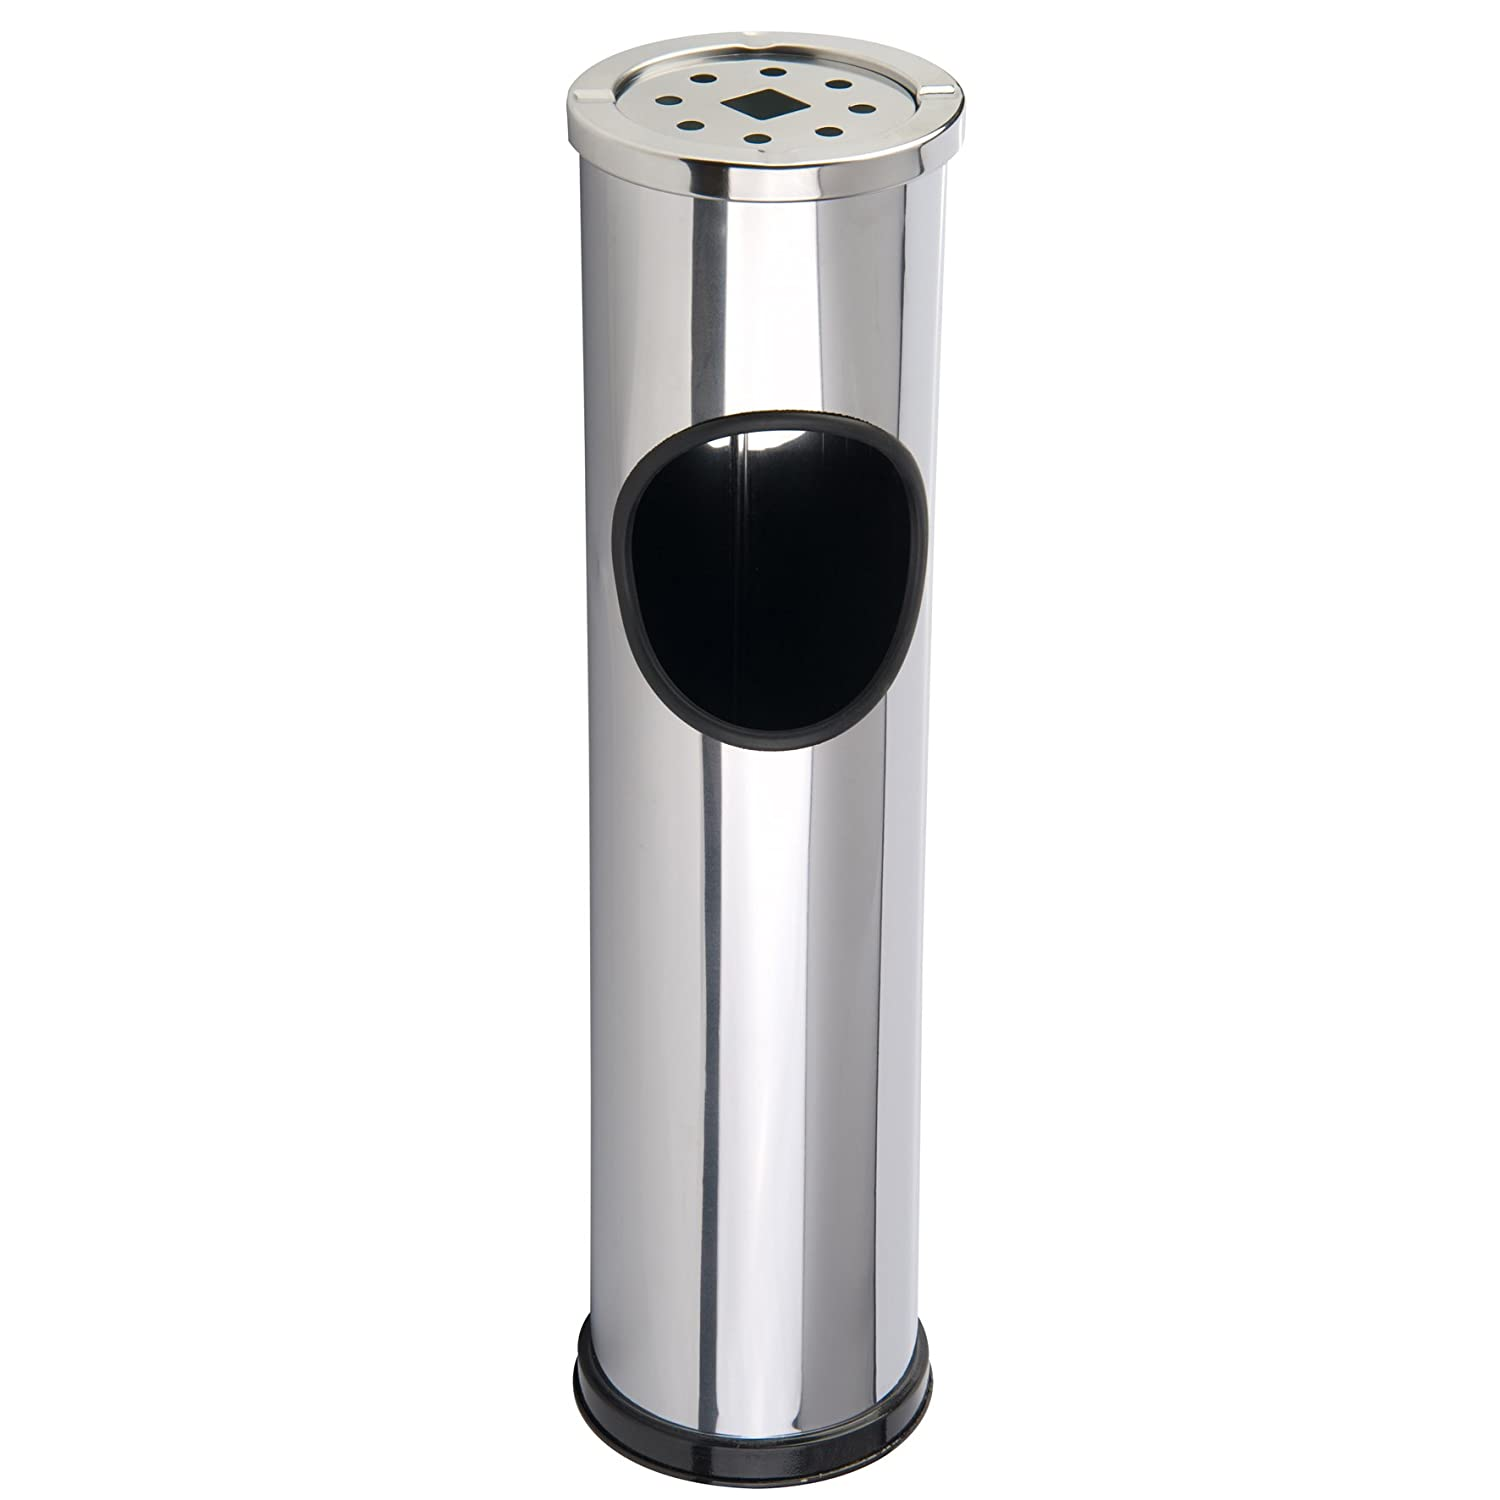 Amazon.com: Deuba Stainless Steel Outdoor Rubbish Bin Cigarette ...